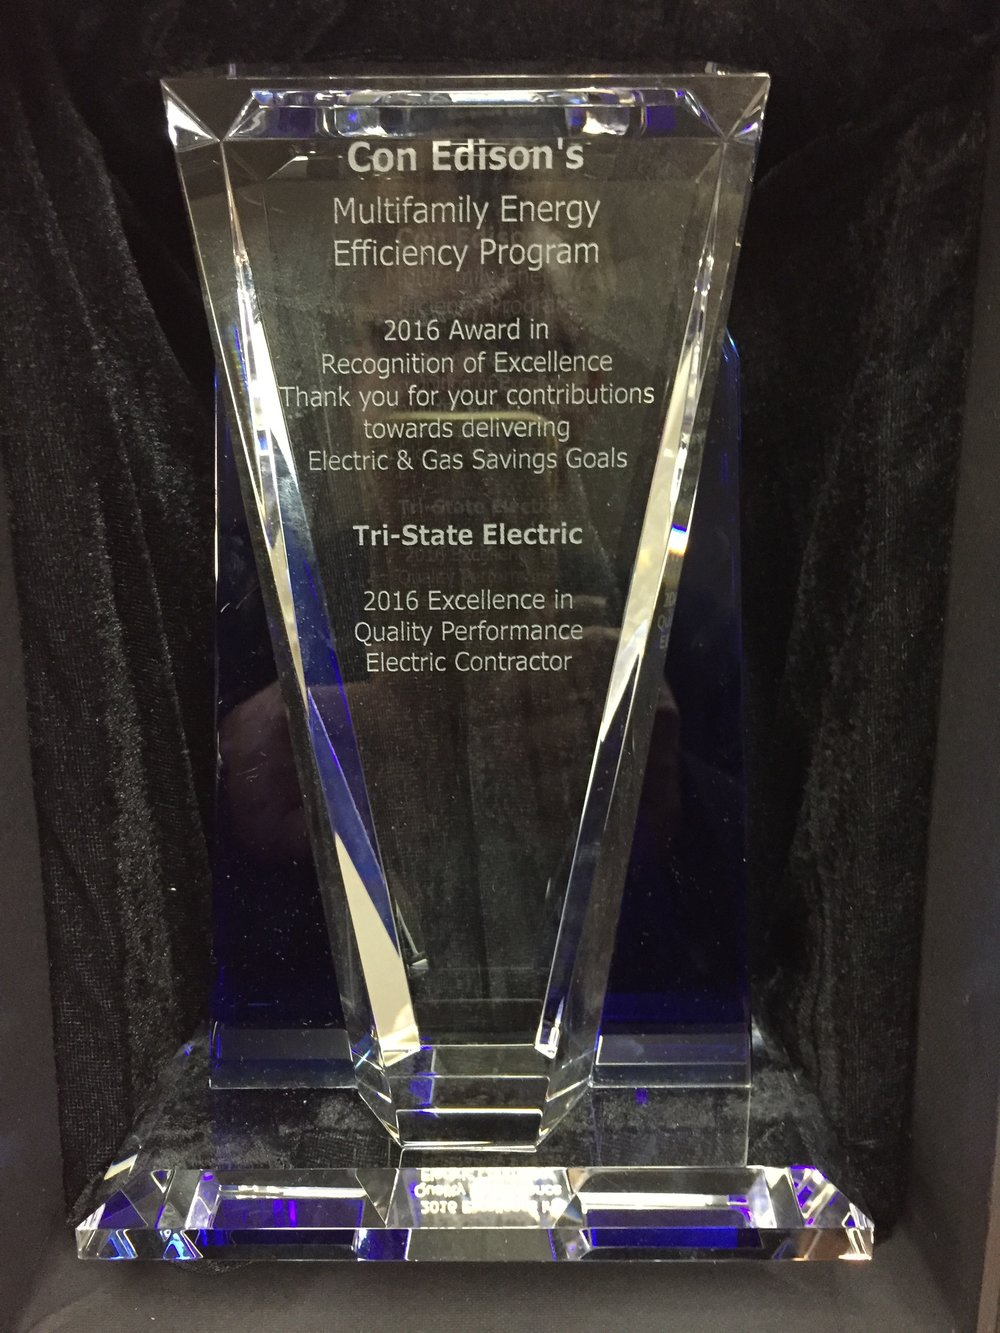 Con Edison MFEEP 2016 Award Winner